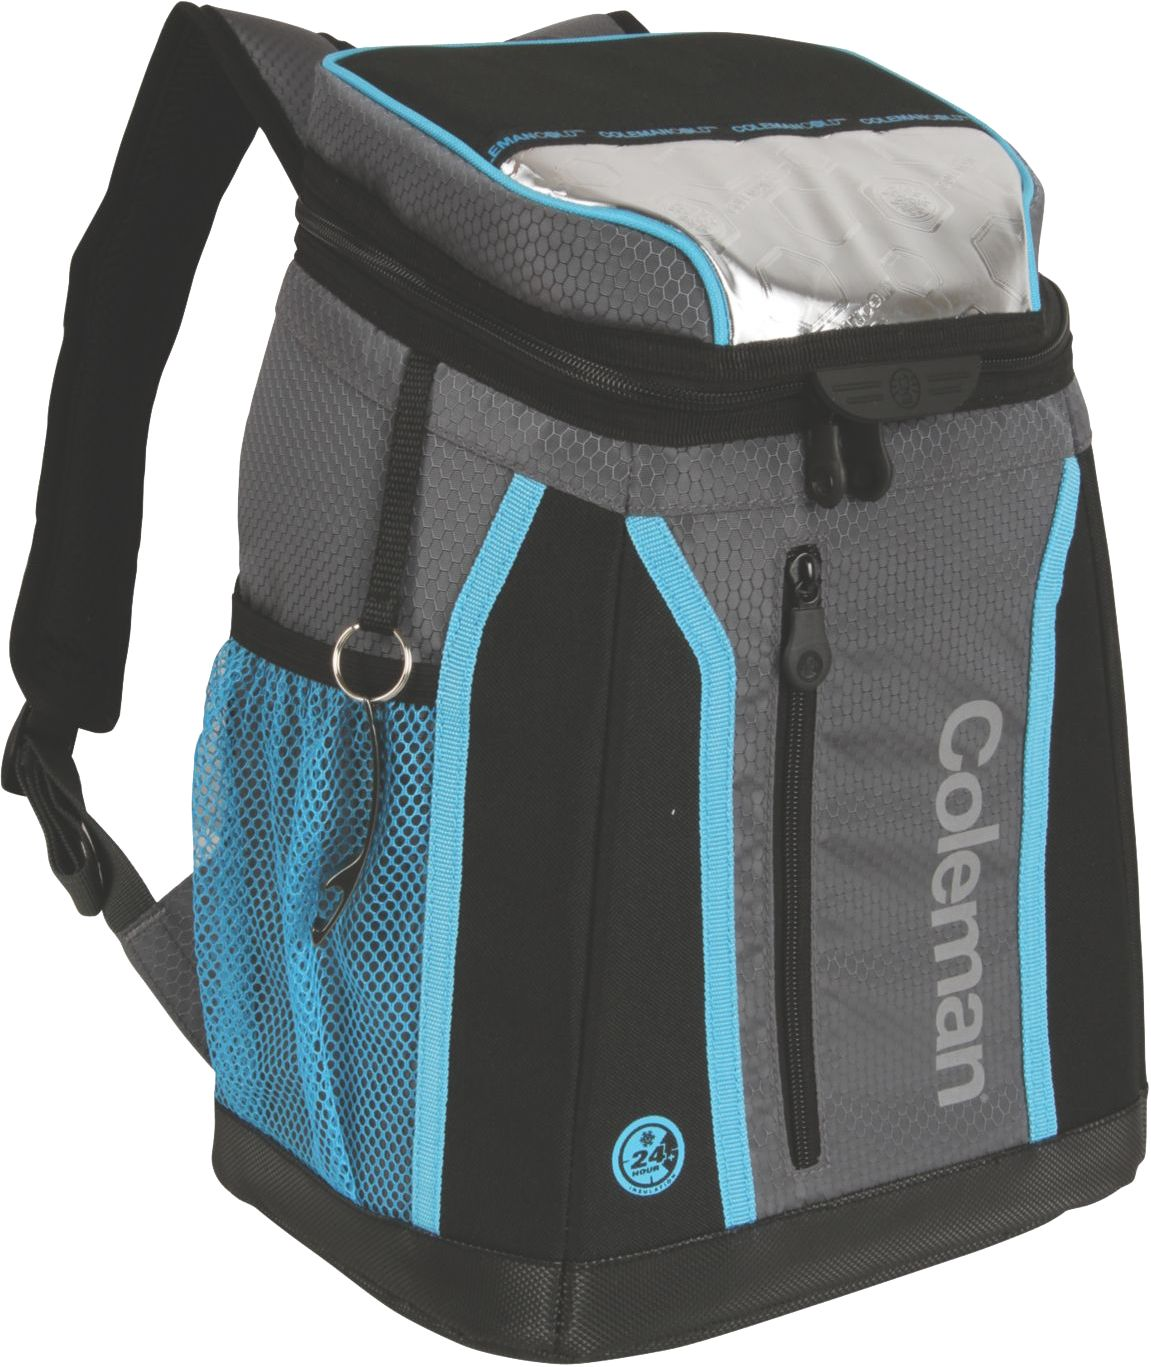 Coleman Backpack 18 Can Cooler Bag| DICK'S Sporting Goods